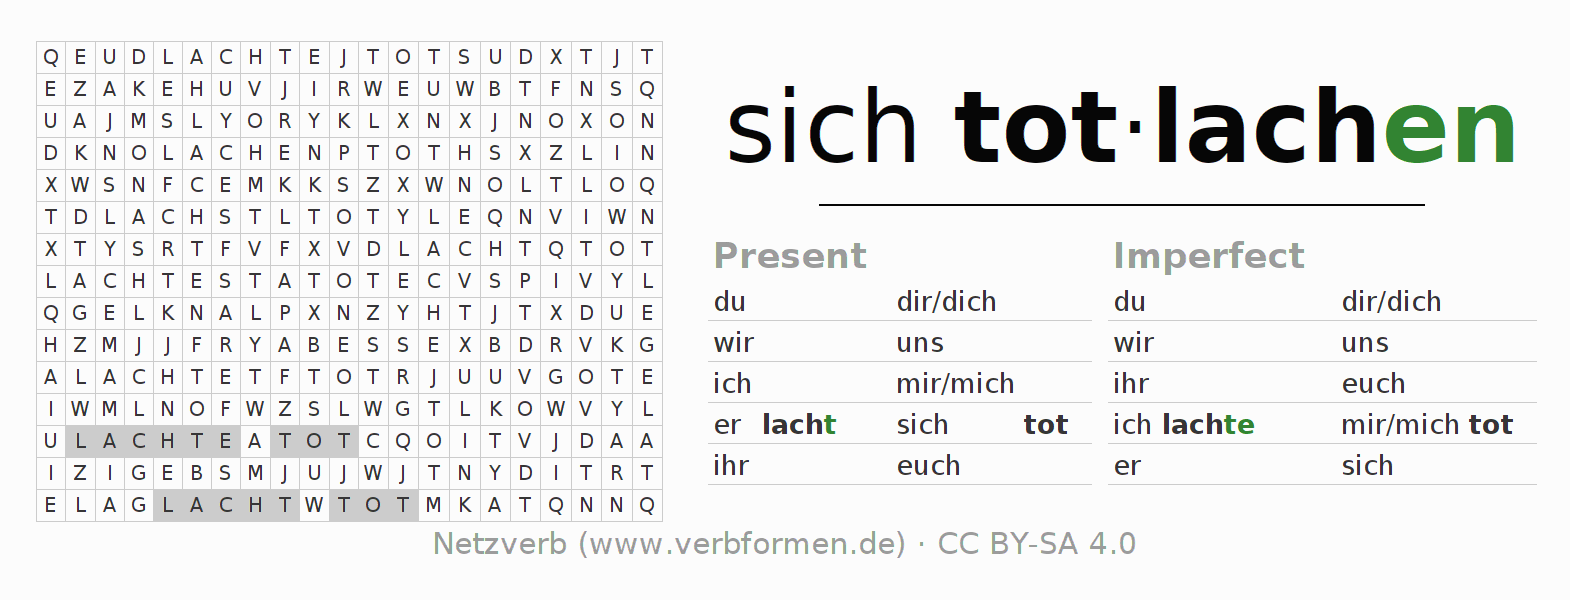 Word search puzzle for the conjugation of the verb sich totlachen